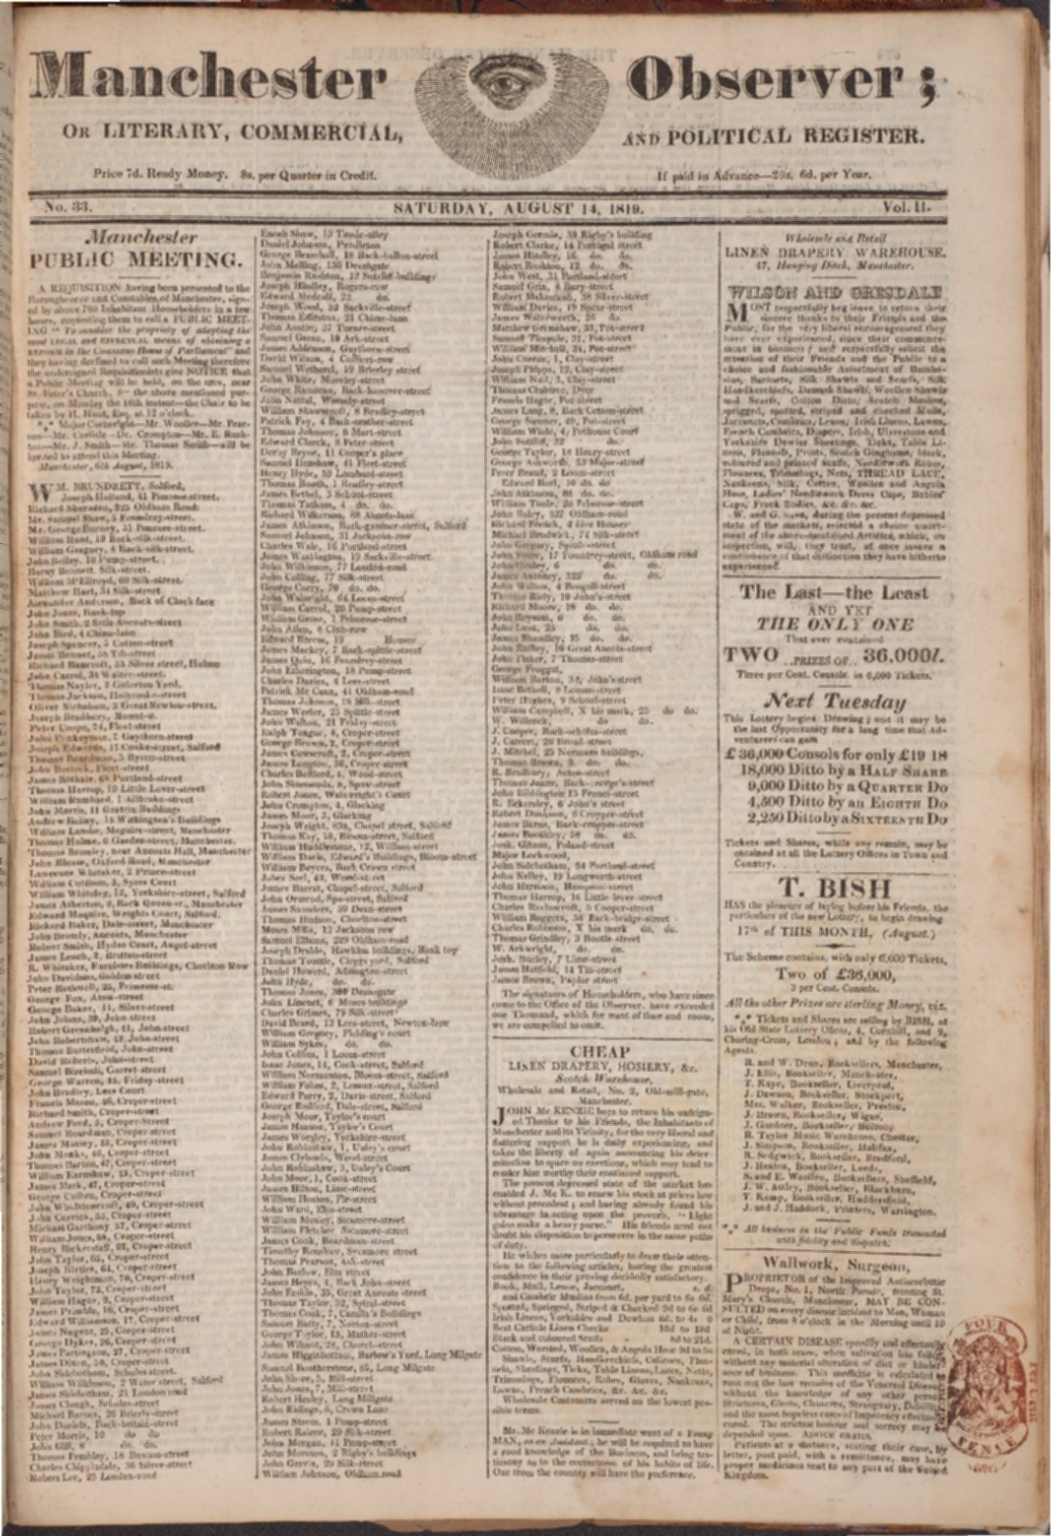 Manchester Observer, August 14, 1819. Copyright University of Manchester Library.